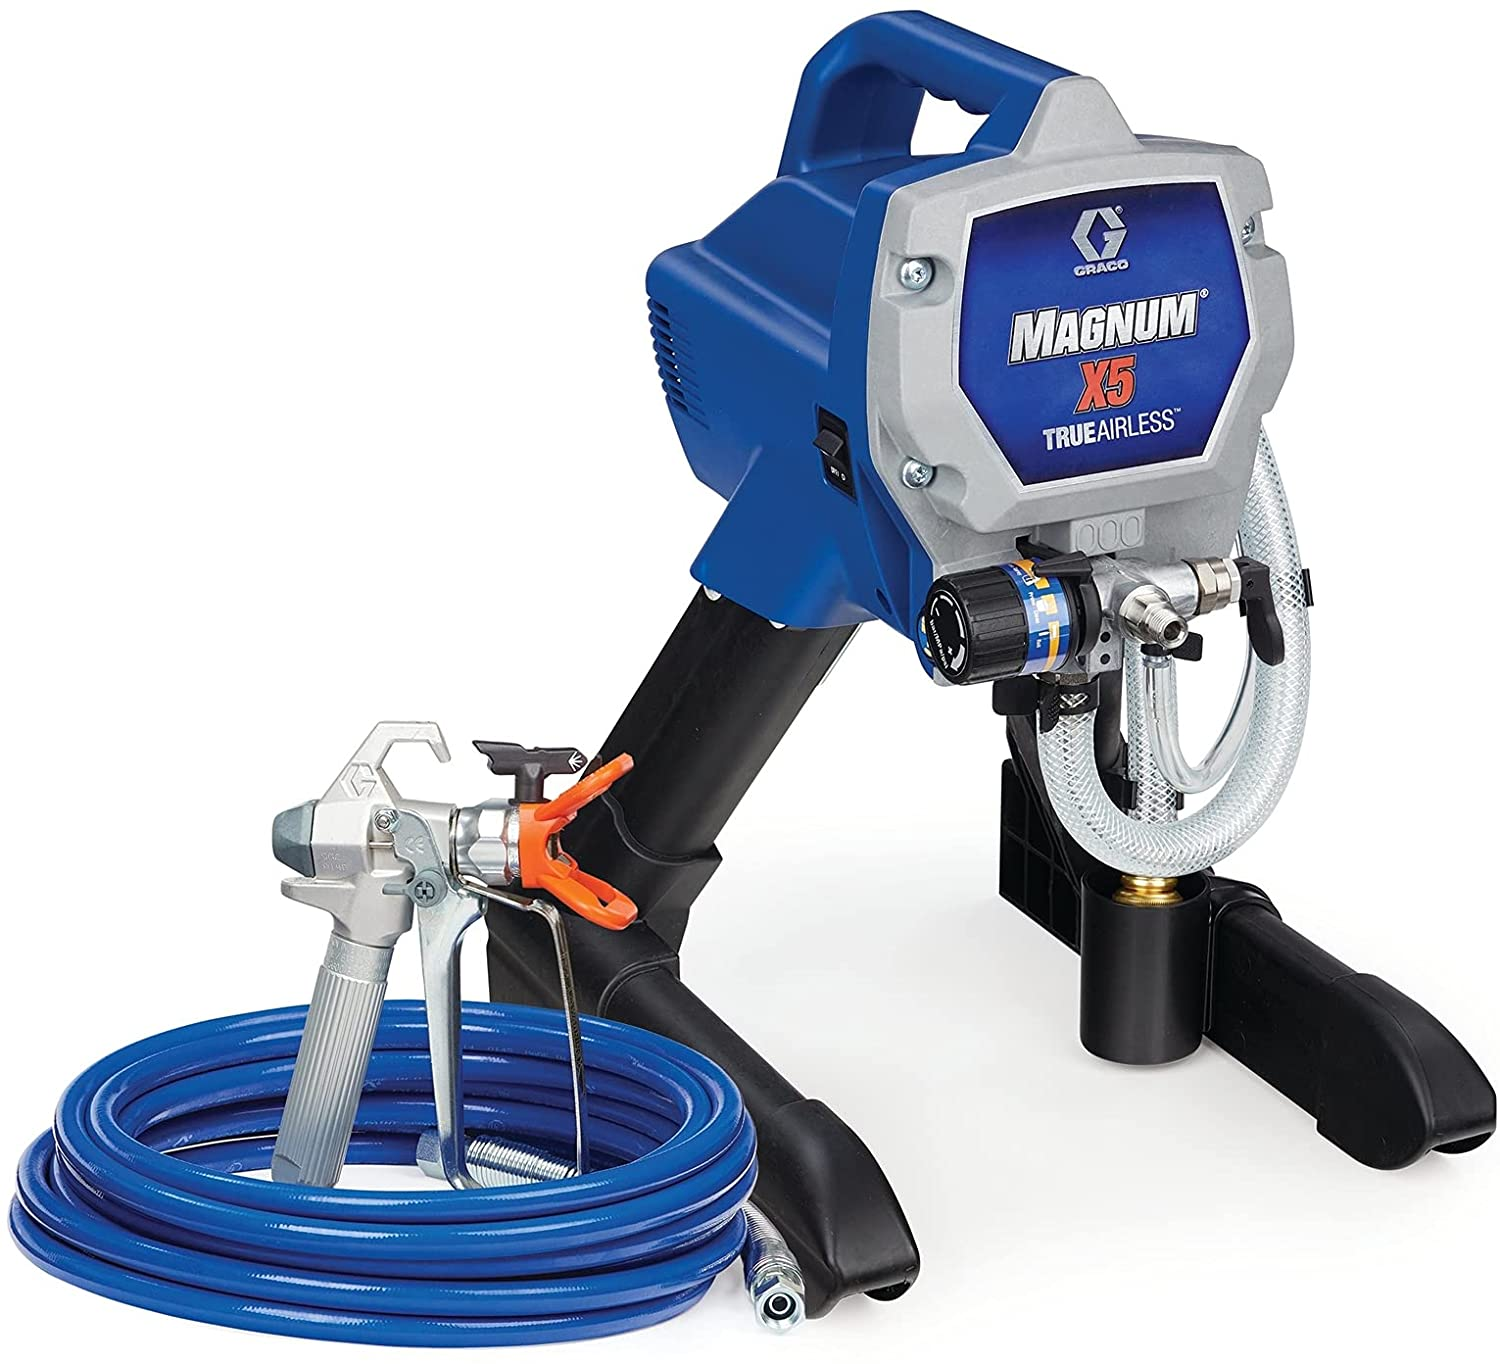 Graco Magnum X5 Stand Airless Paint Sprayer – Best Versatile Airless Paint Sprayer